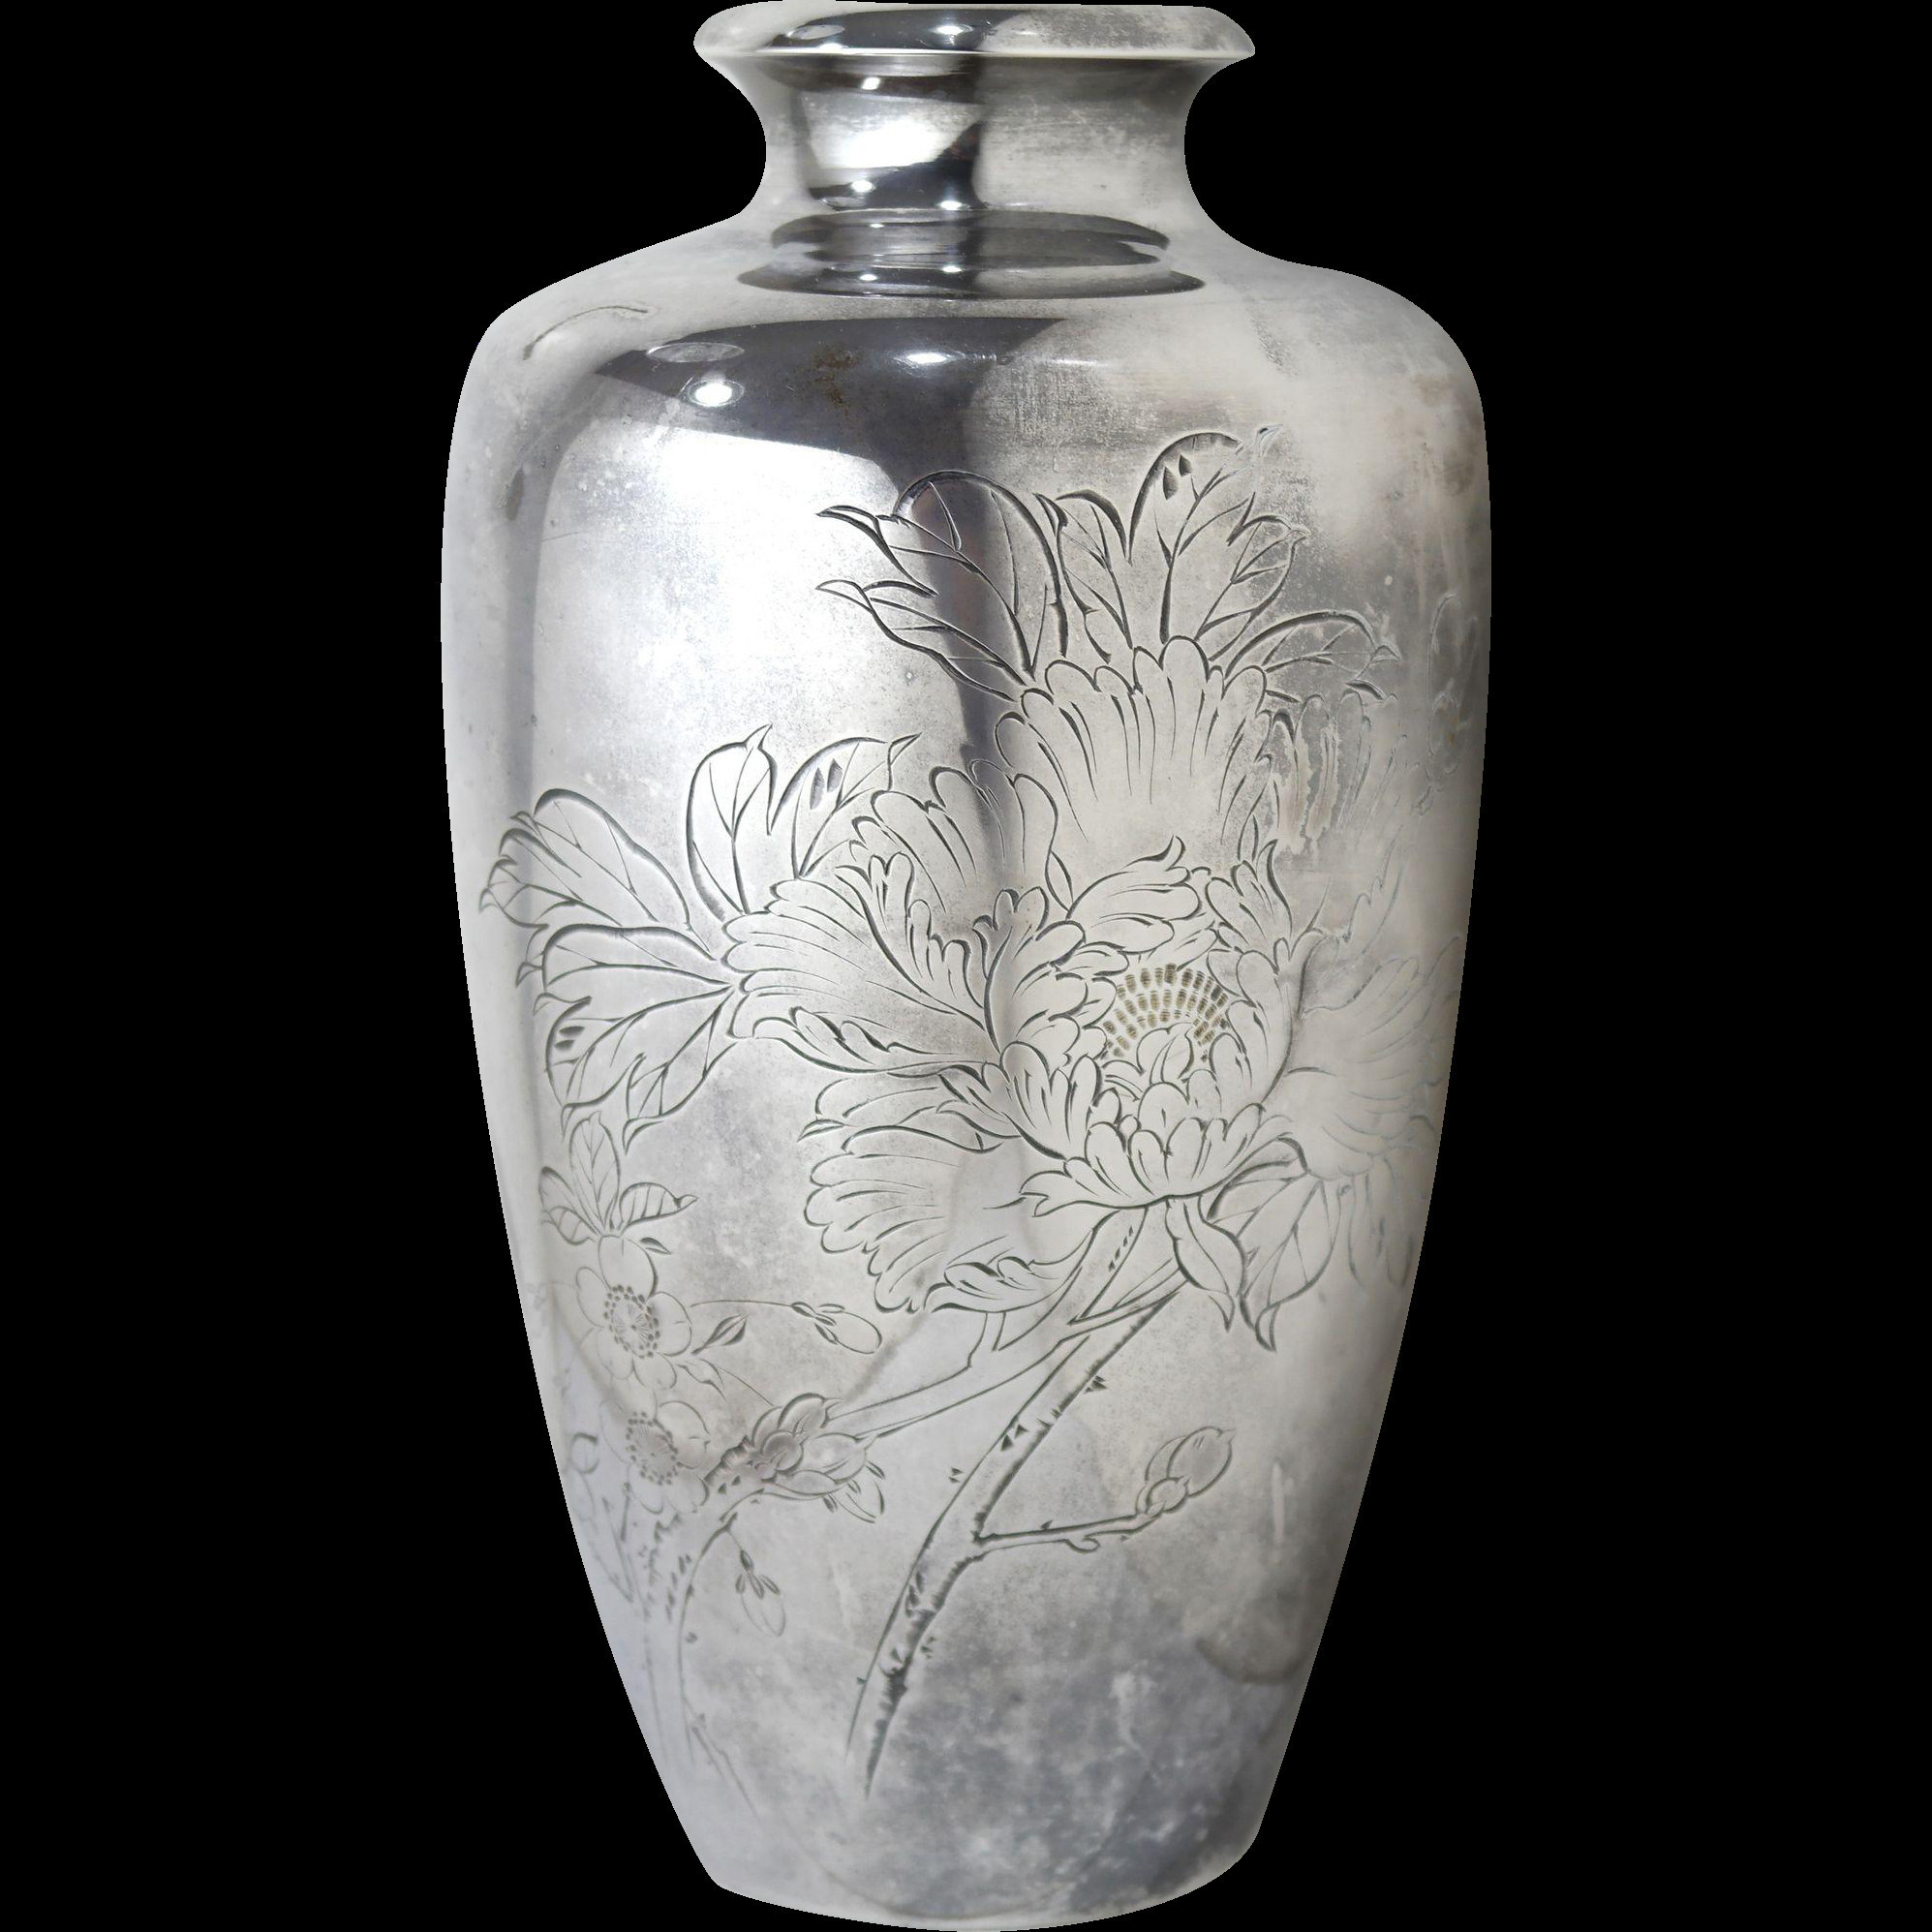 mexican wedding vase of white and silver vase pics xh vases silver vase chinese export 1i 0d throughout white and silver vase pics xh vases silver vase chinese export 1i 0d orchids for weddi